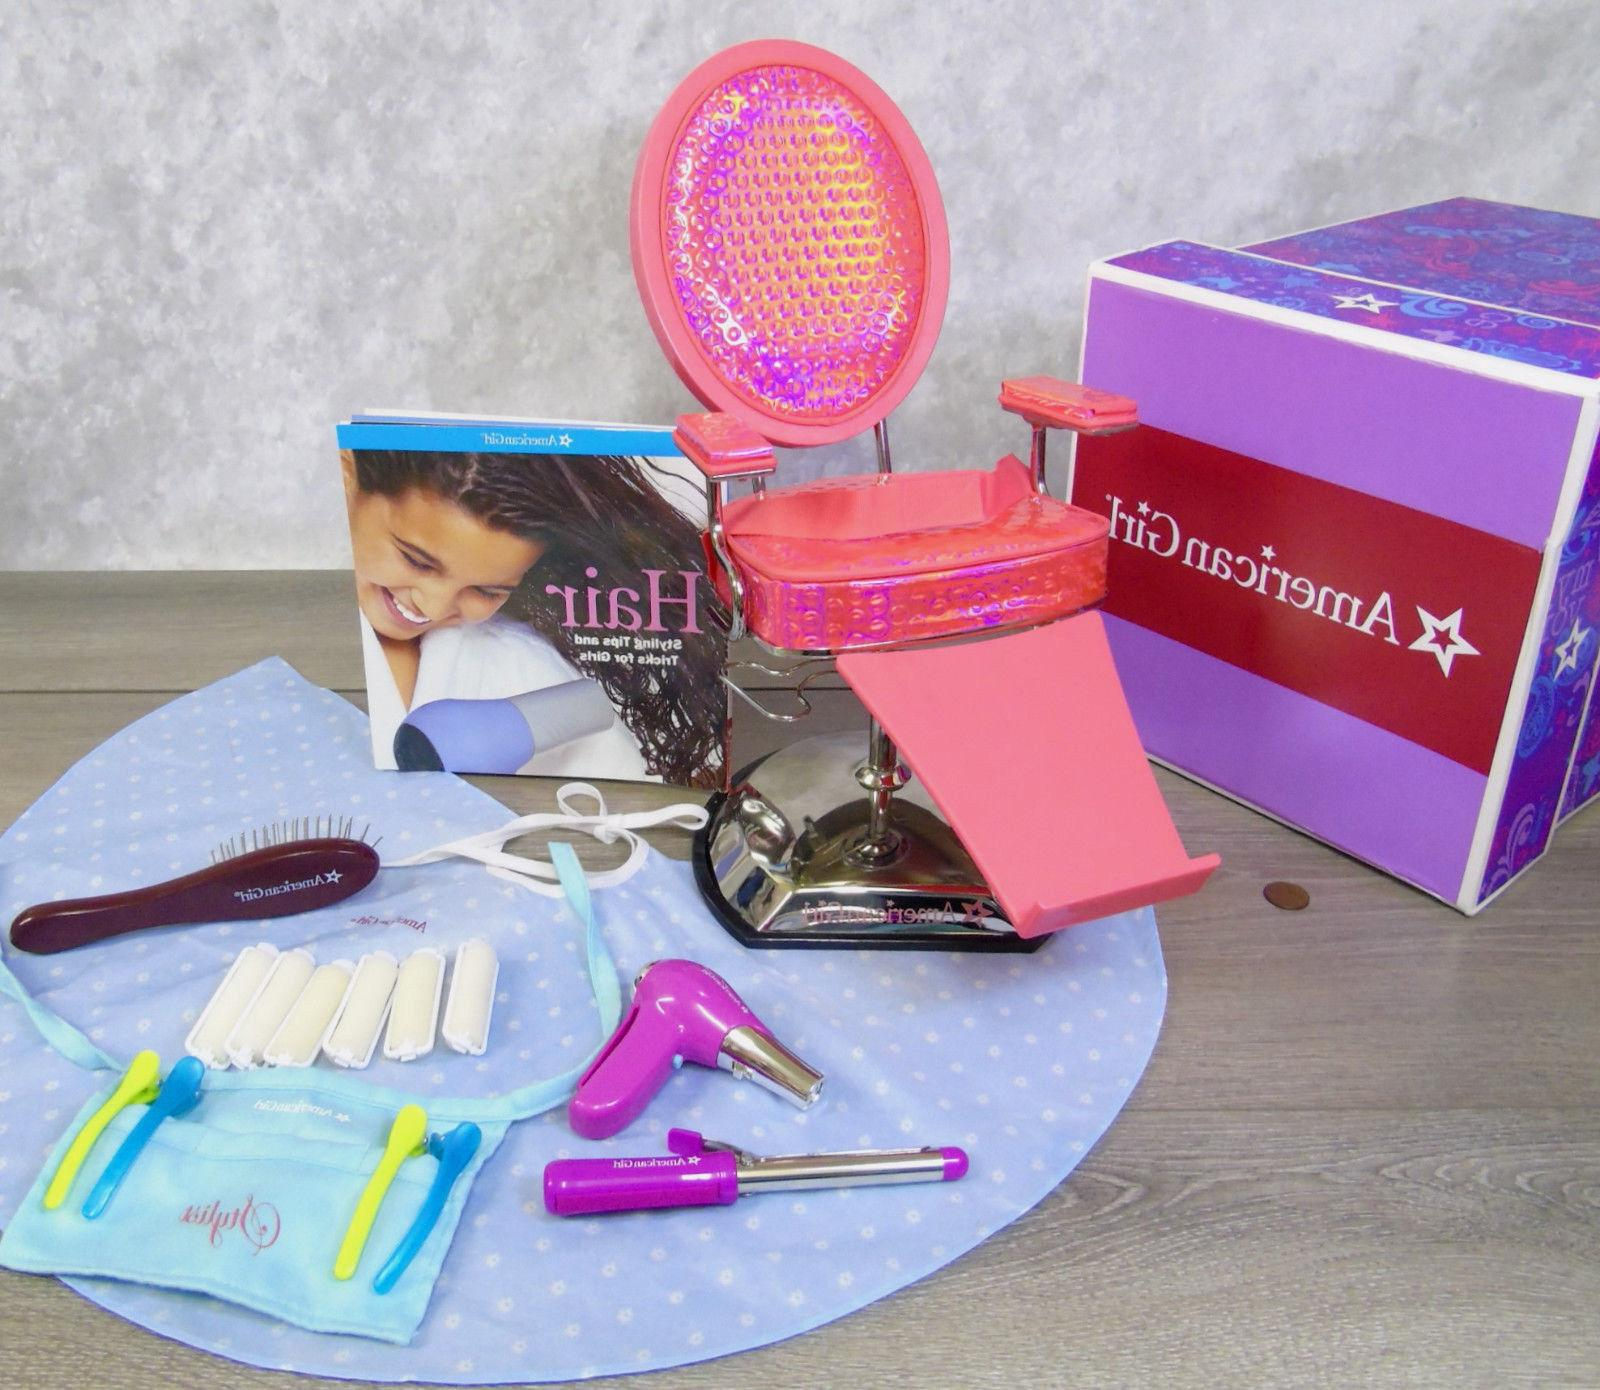 American Girl STYLING & ACCESSORIES Brush Blow Dryer